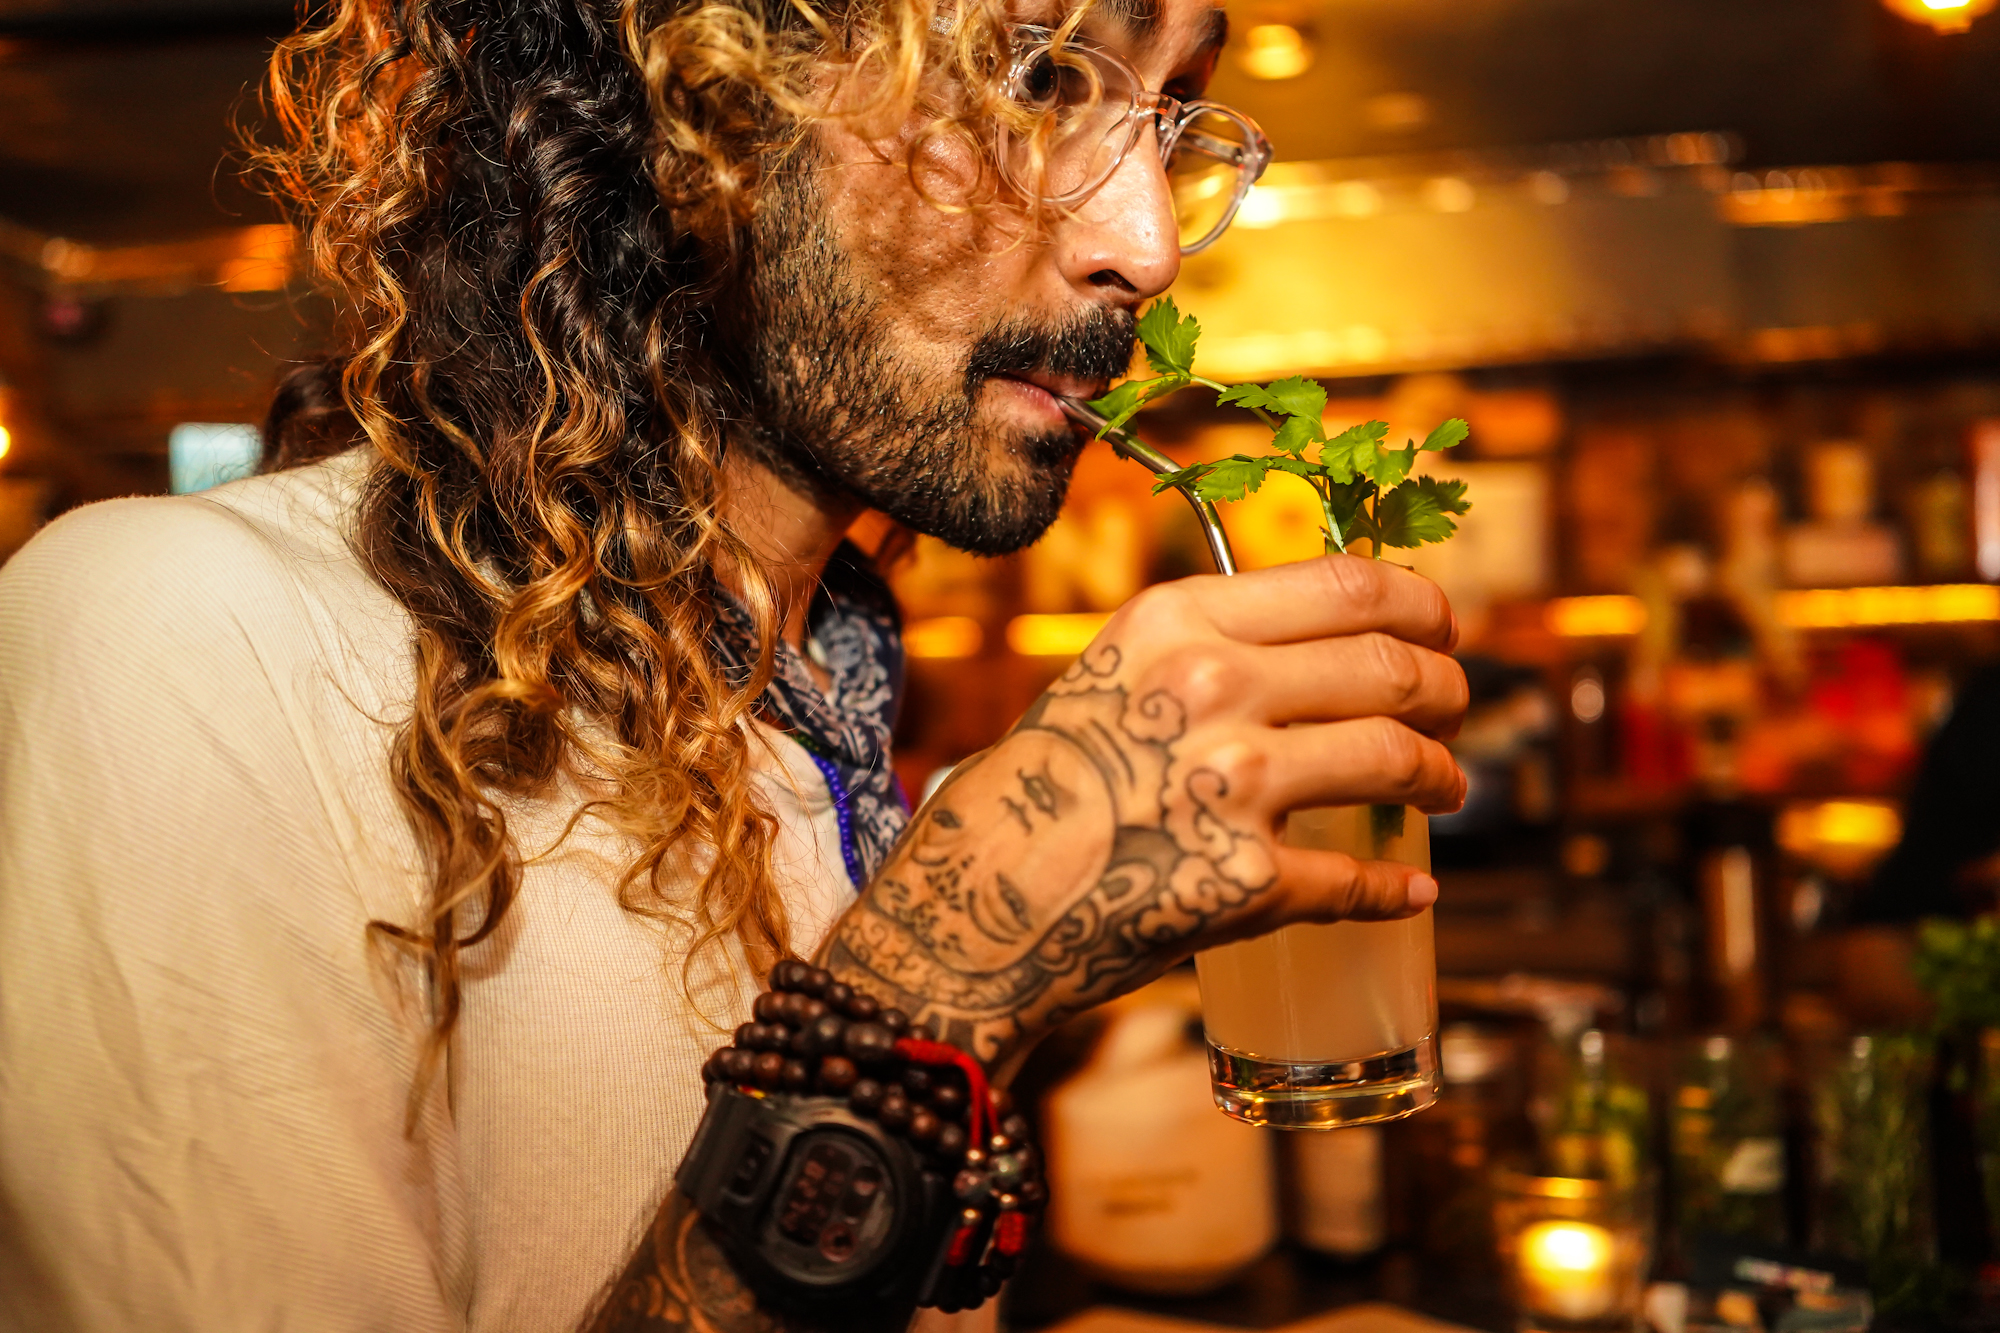 """On the strength of its raucous pop-up events, this upstart has become one of the most promising alcohol-free spots on the New York City party circuit."" - THE OBSERVER"